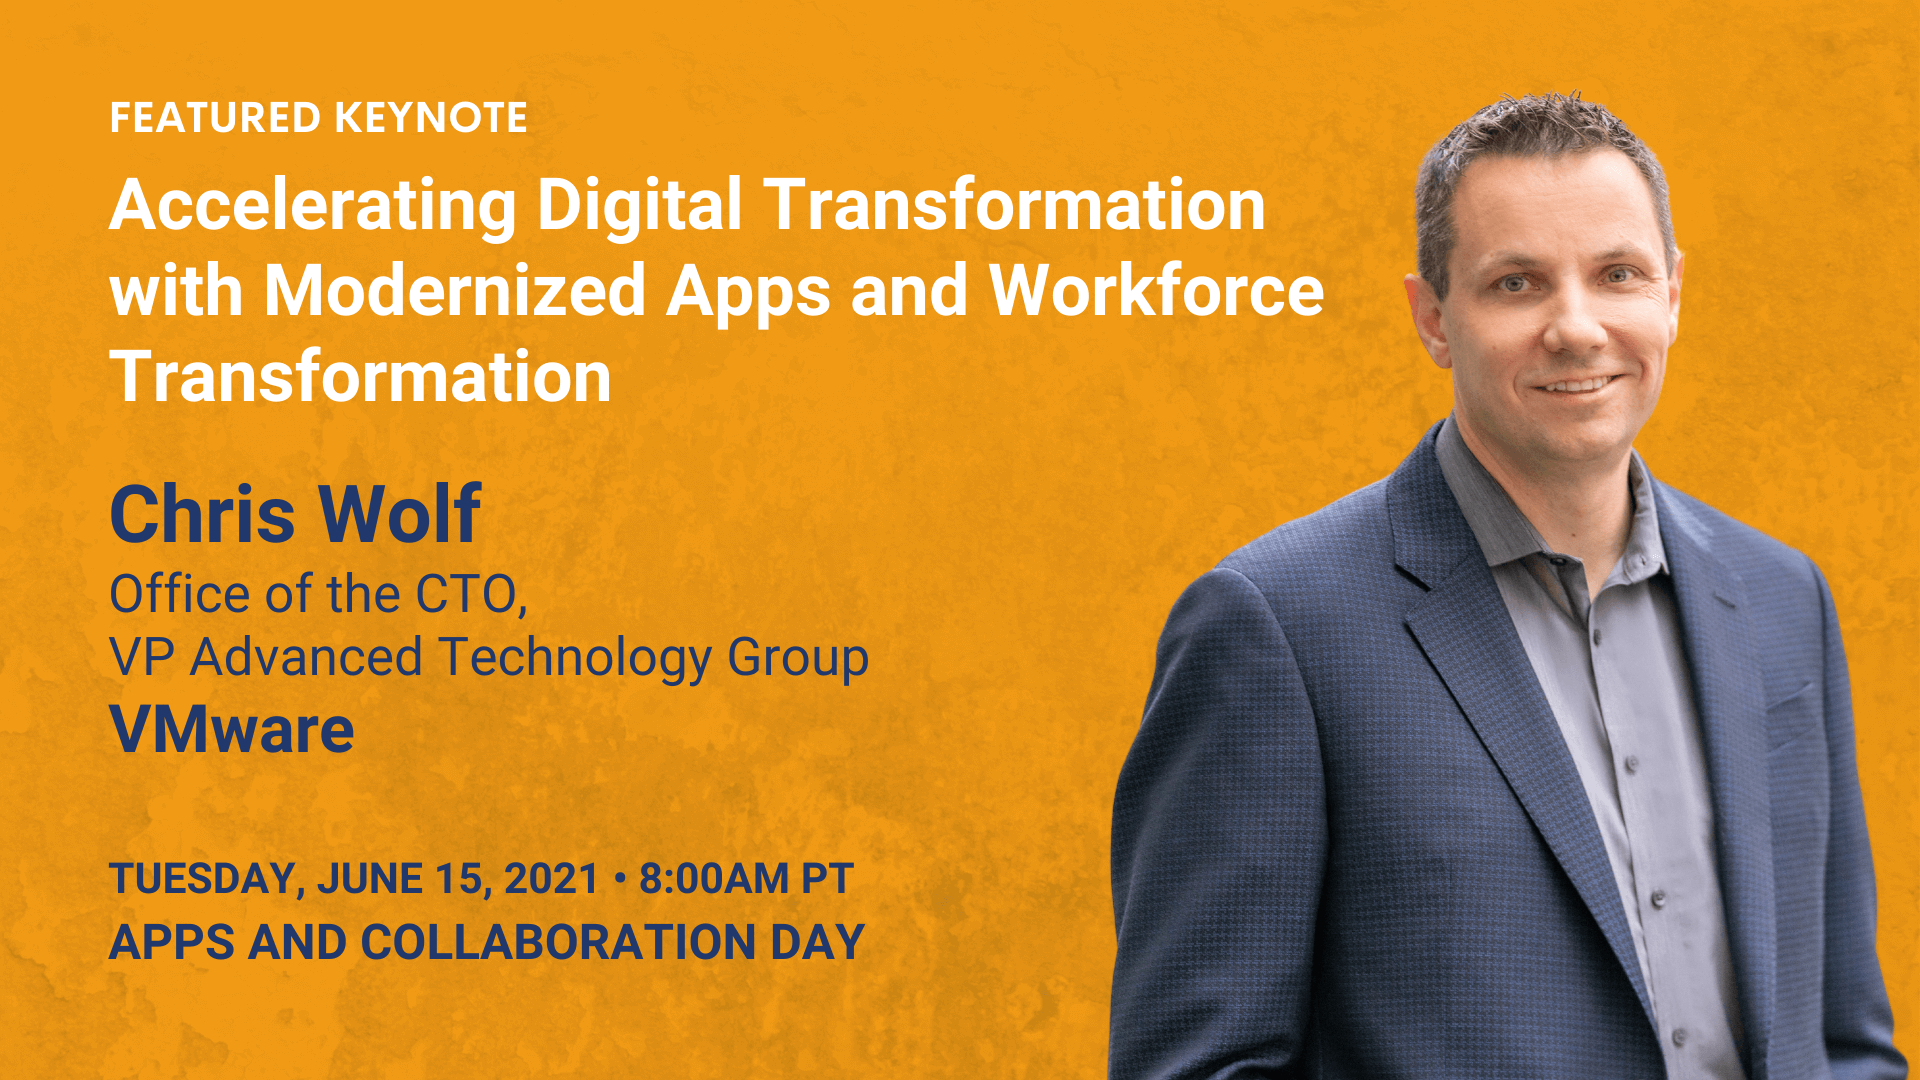 Accelerating Digital Transformation with Modernized Apps and Workforce Transformation (Chris Wolf)